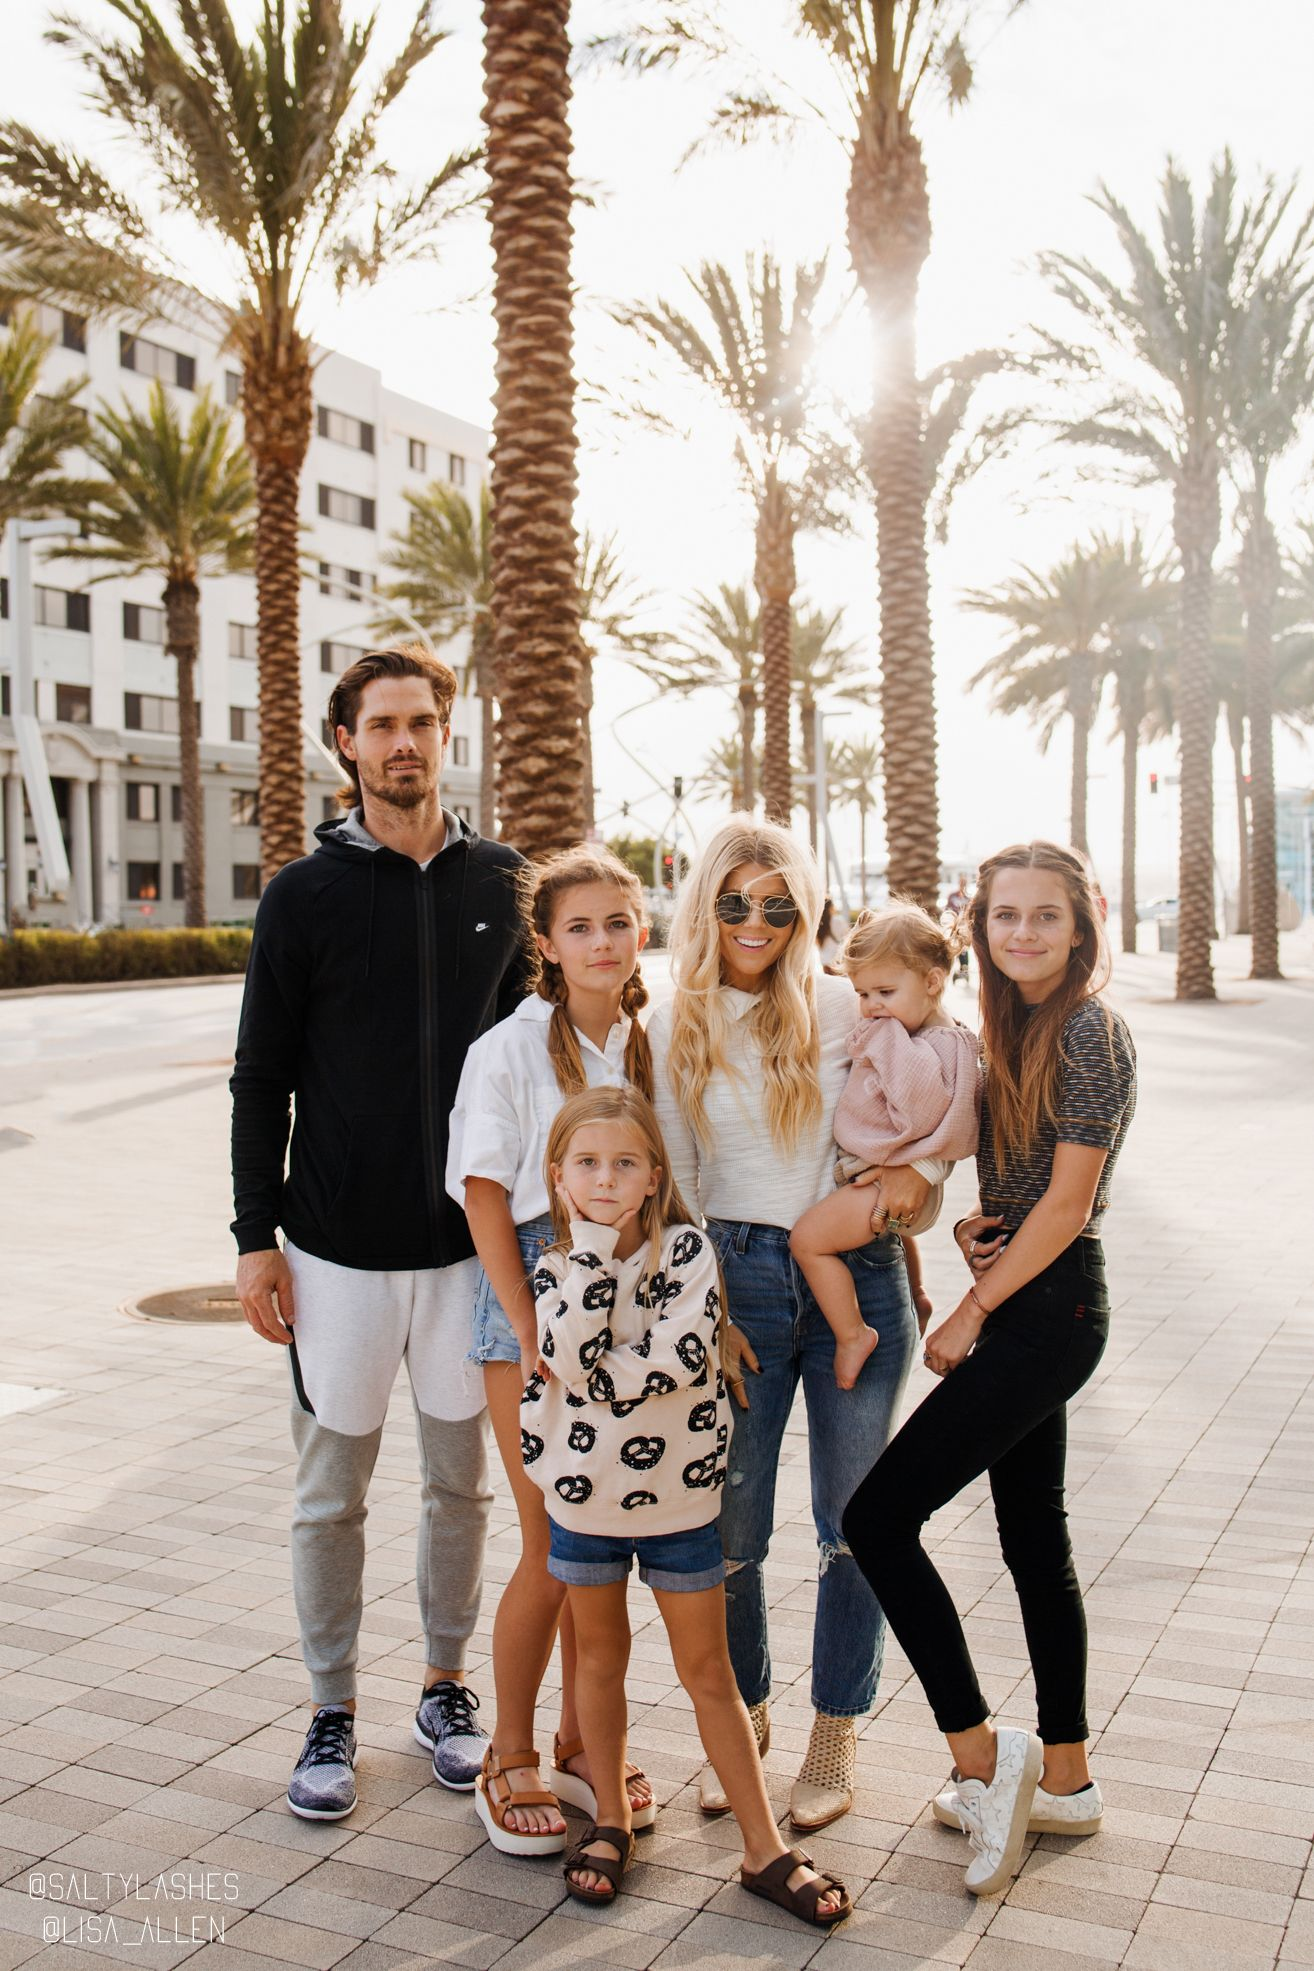 1b1c48387c Lisa Allen From Salty Lashes On Her Family's Stay At The Intercontinental  San Diego #lisaallen #saltylashes #blogger #influencer #hotel #luxuryhotel  ...